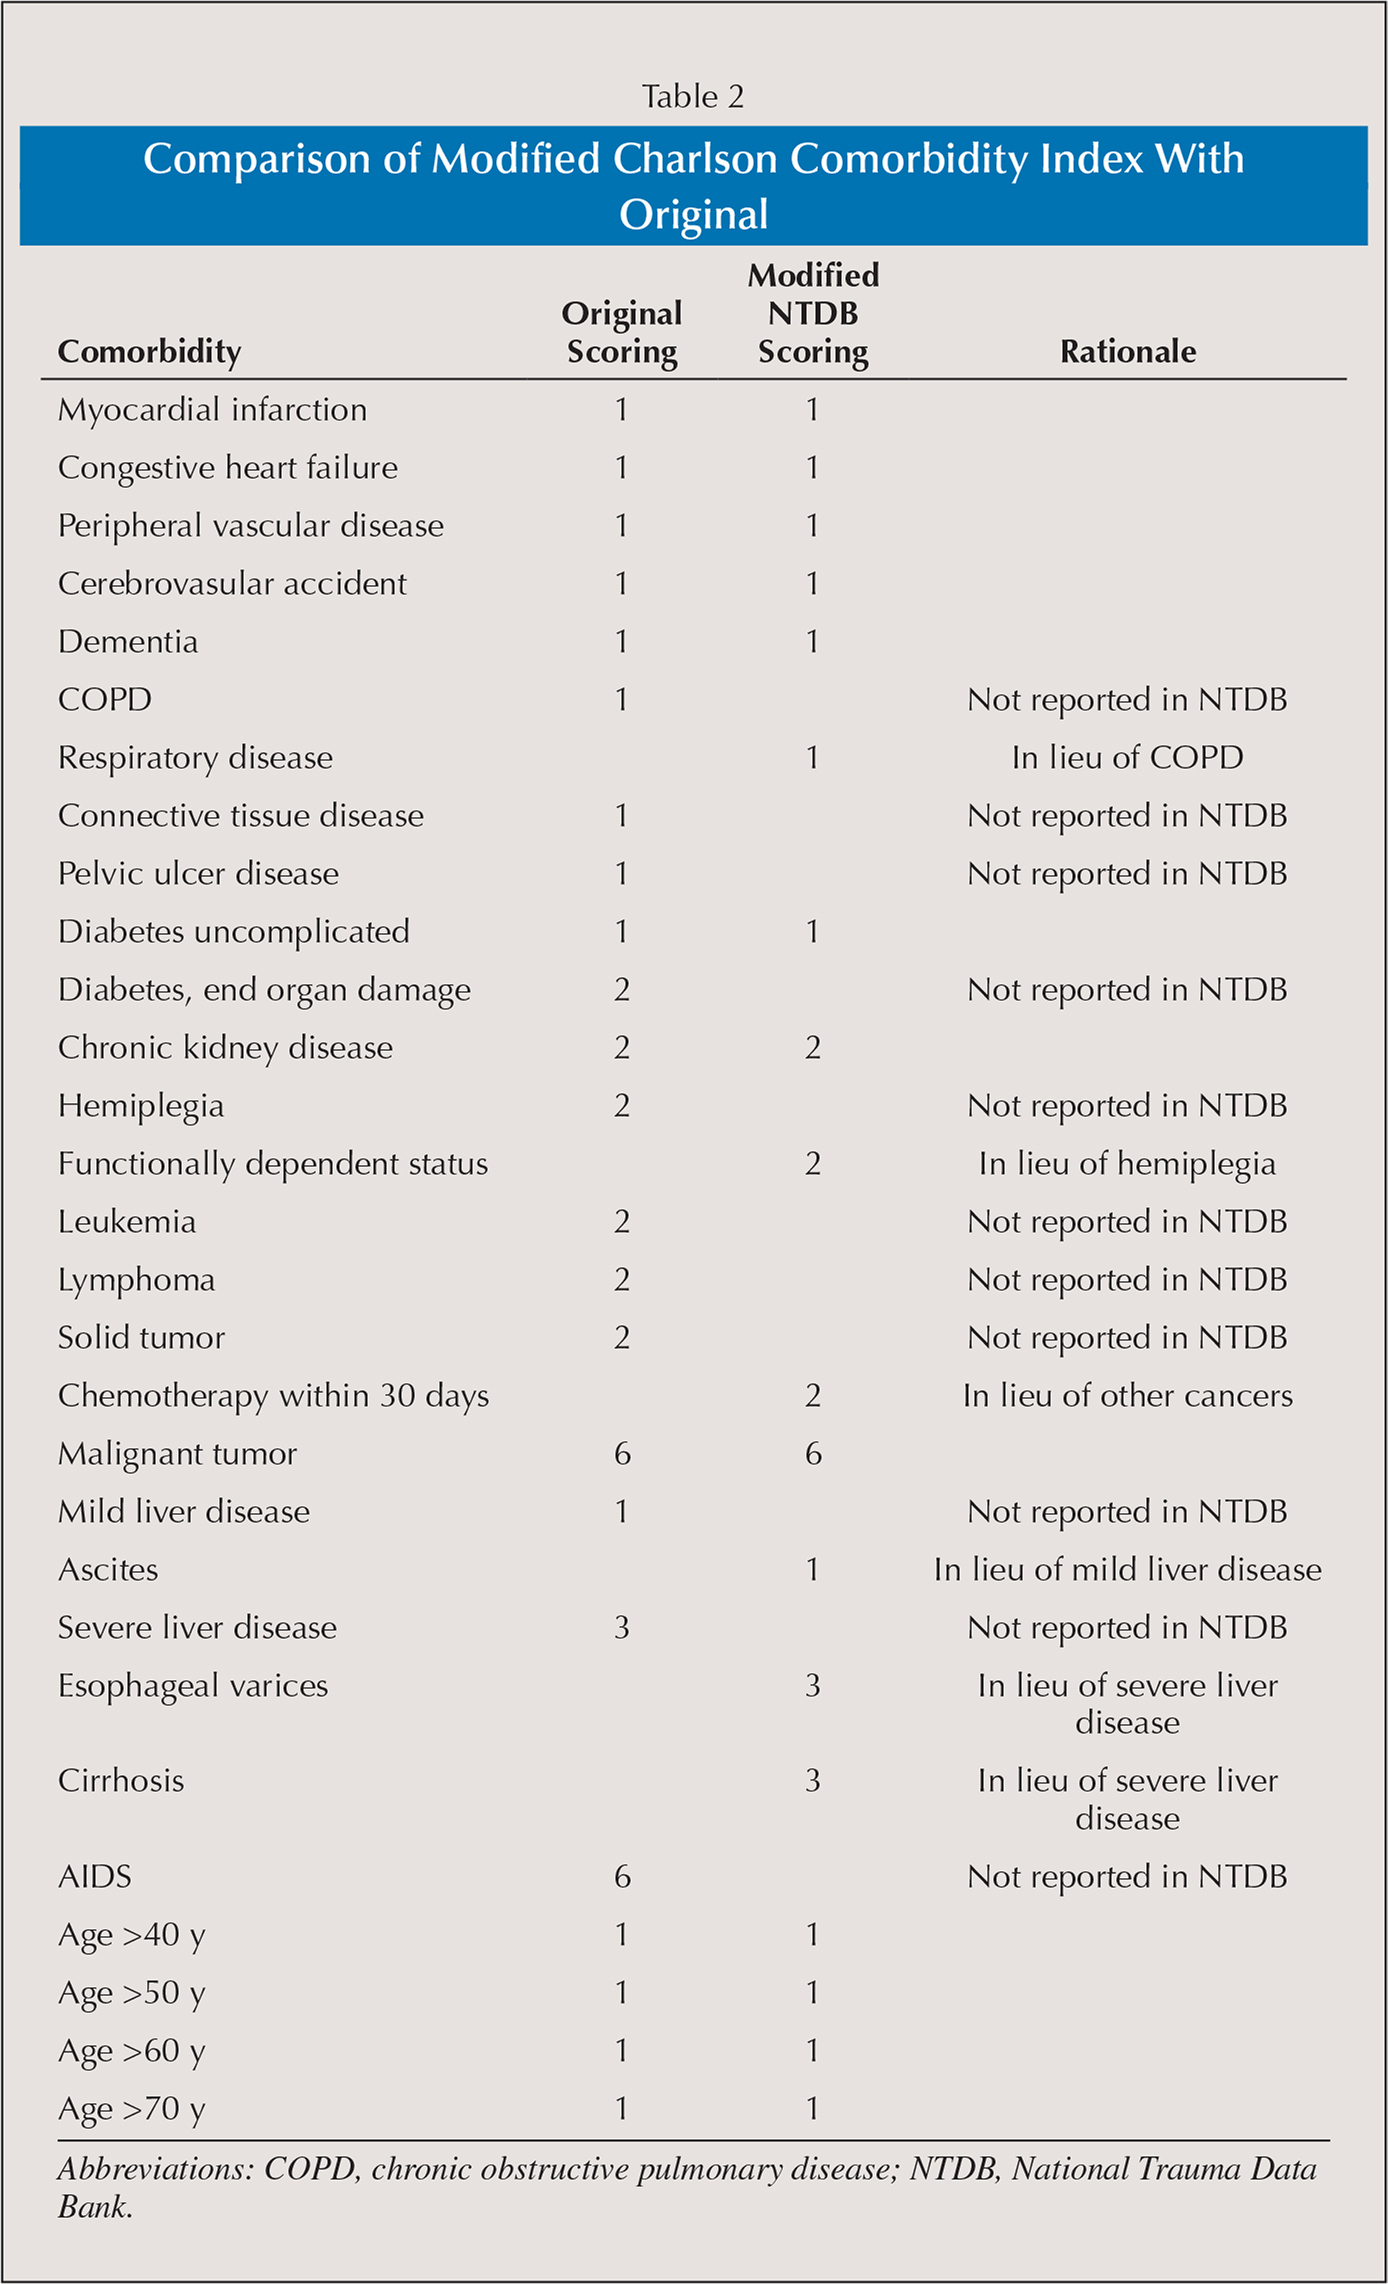 Comparison of Modified Charlson Comorbidity Index With Original